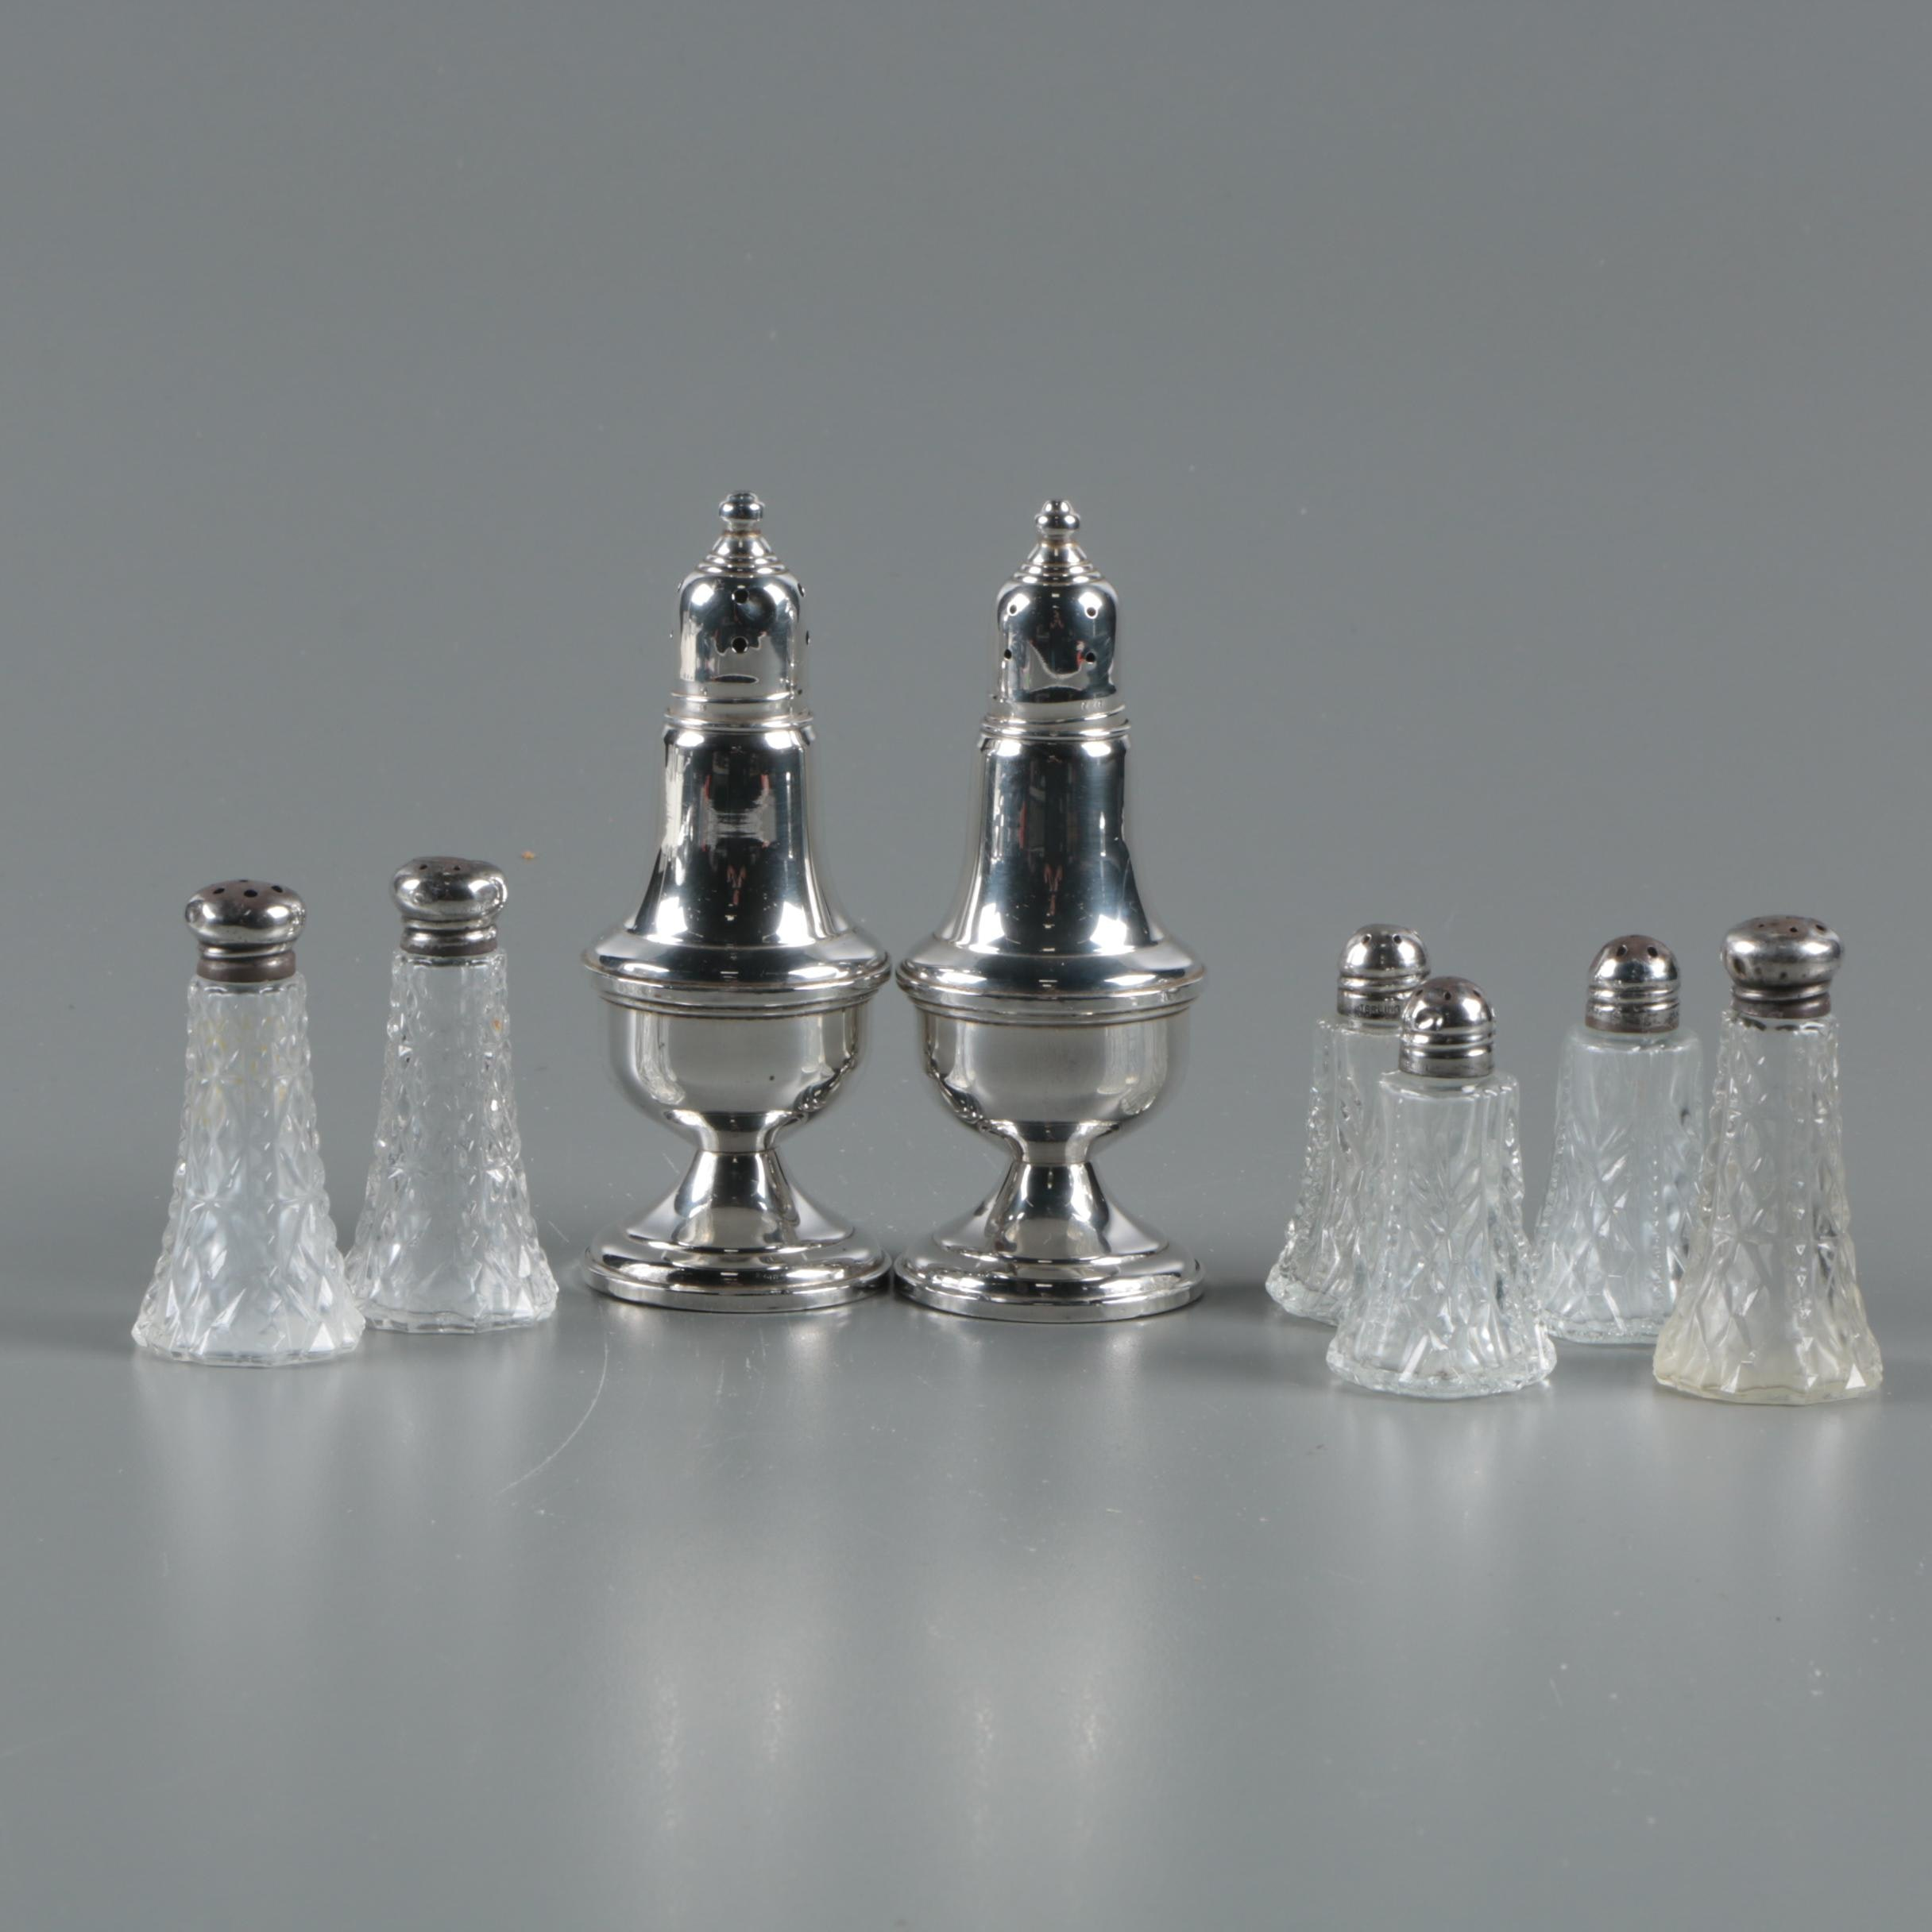 Empire Weighted Sterling Shakers with Sterling Capped Glass Shakers